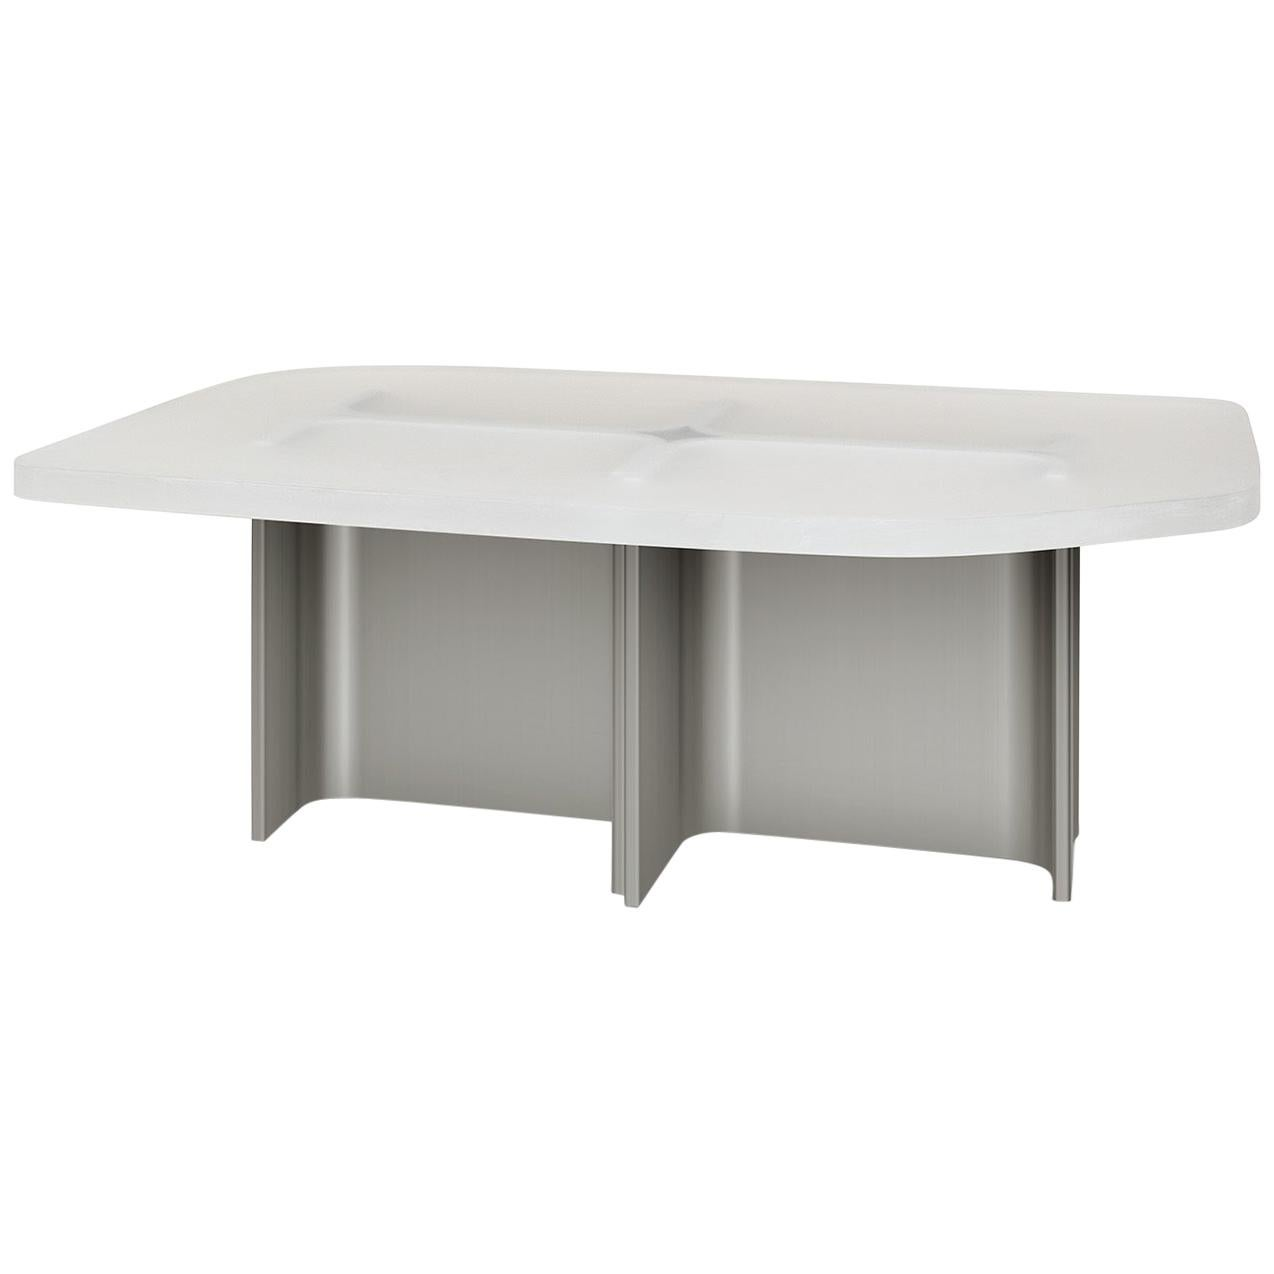 Coffee Table Fossil in Brushed Steel and Transparent Opaque Resin